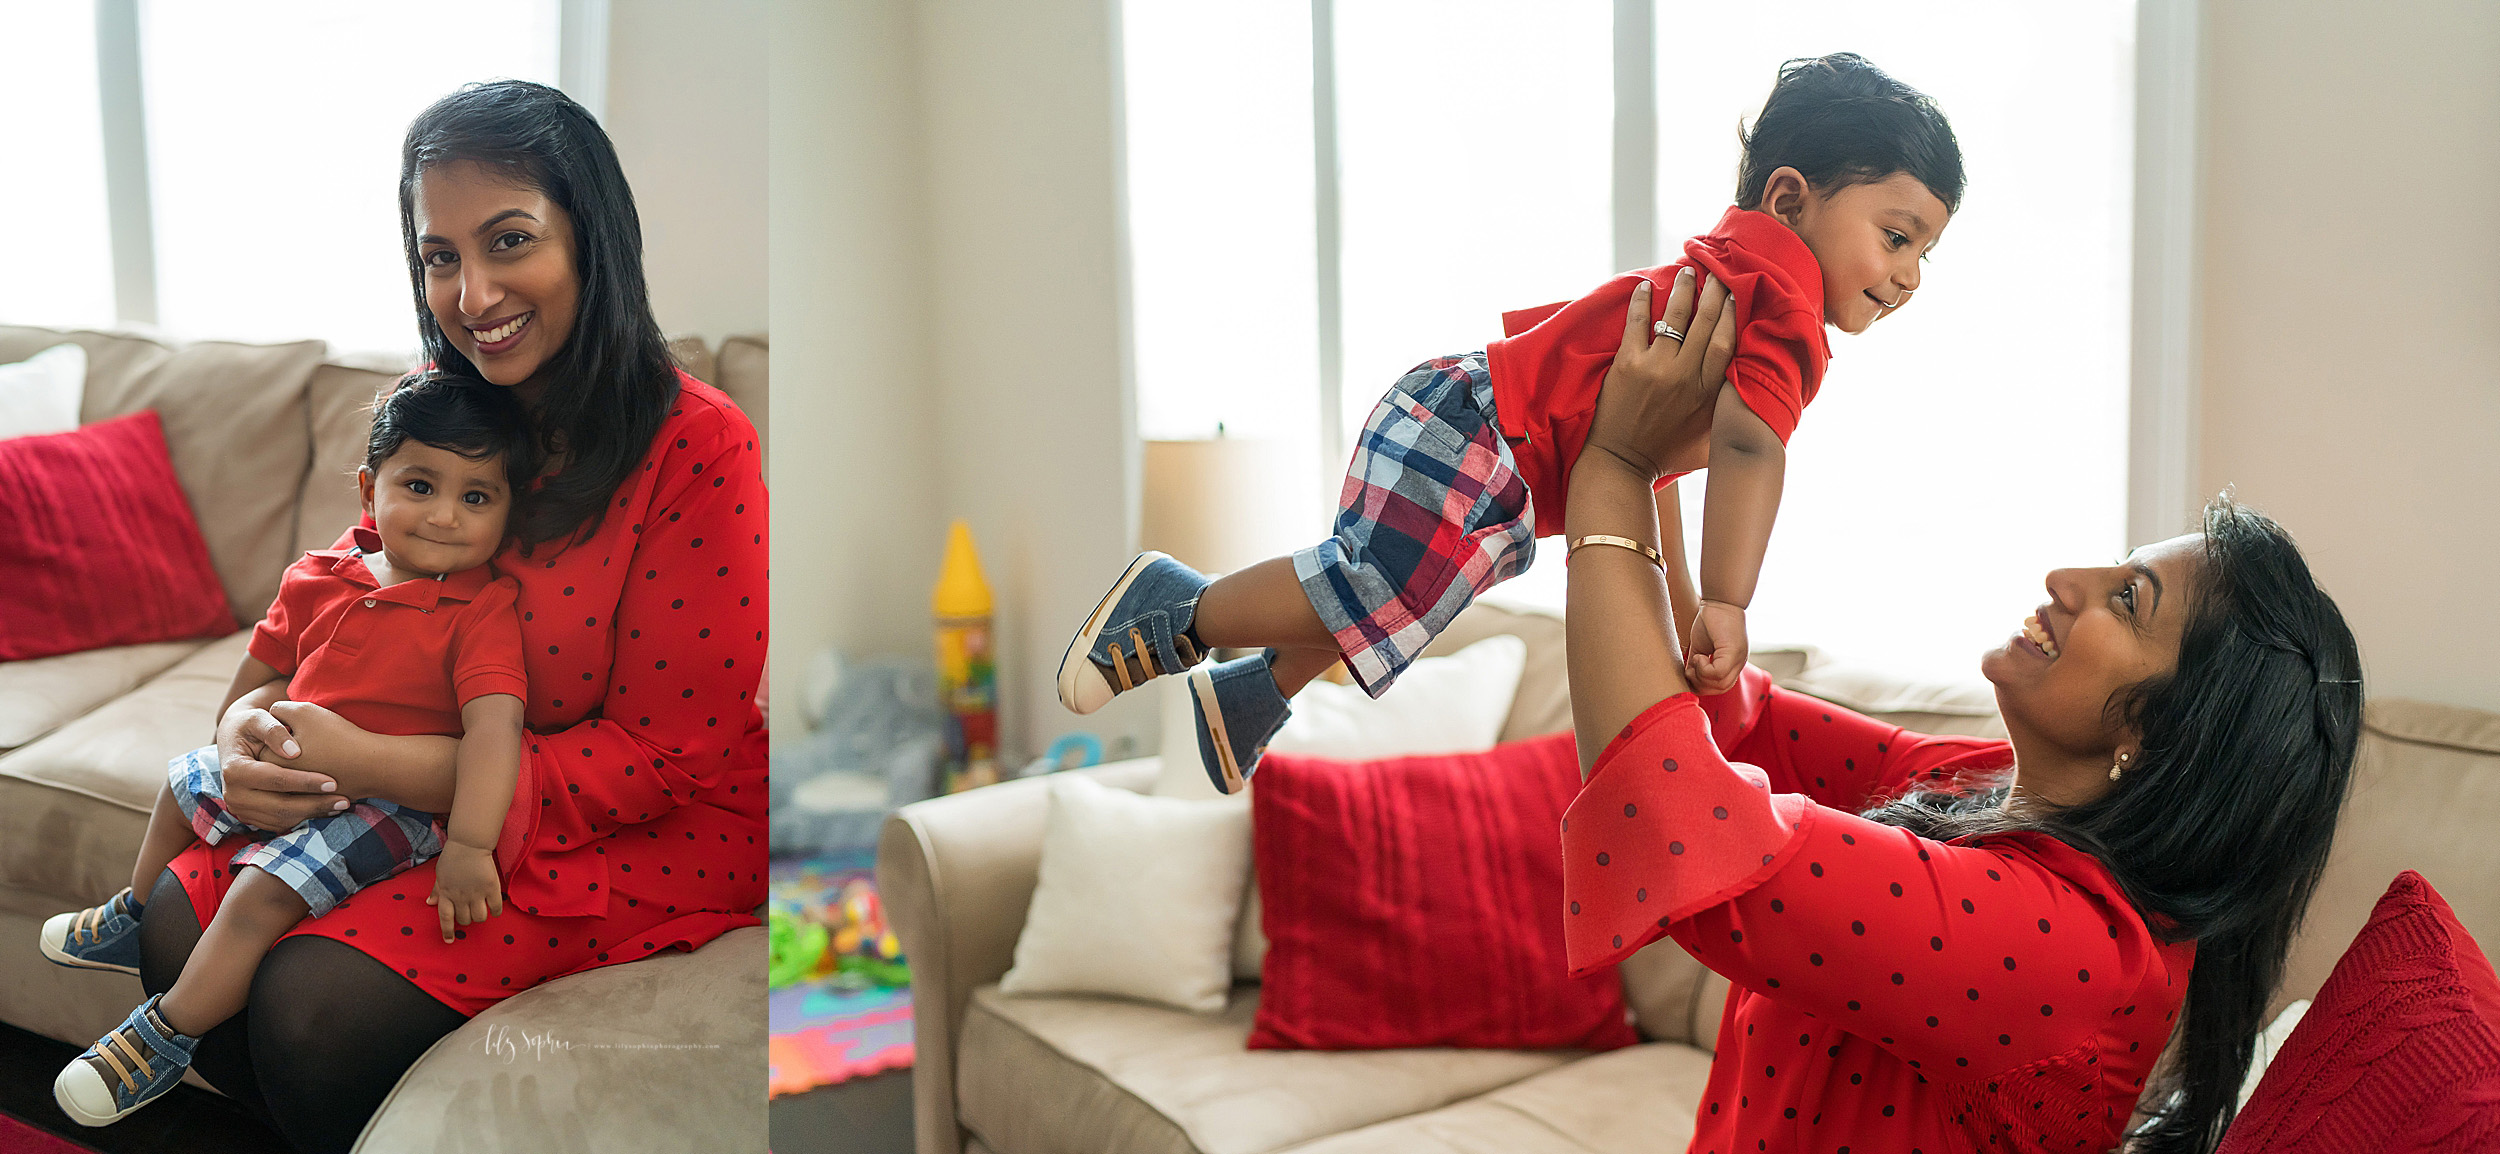 atlanta-brookhaven-east-cobb-marietta-candler-park-sandy-springs-buckhead-virginia-highlands-west-end-decatur-lily-sophia-photography-in-home-lifestyle-session-eight-month-milestone-indian-family_1652.jpg